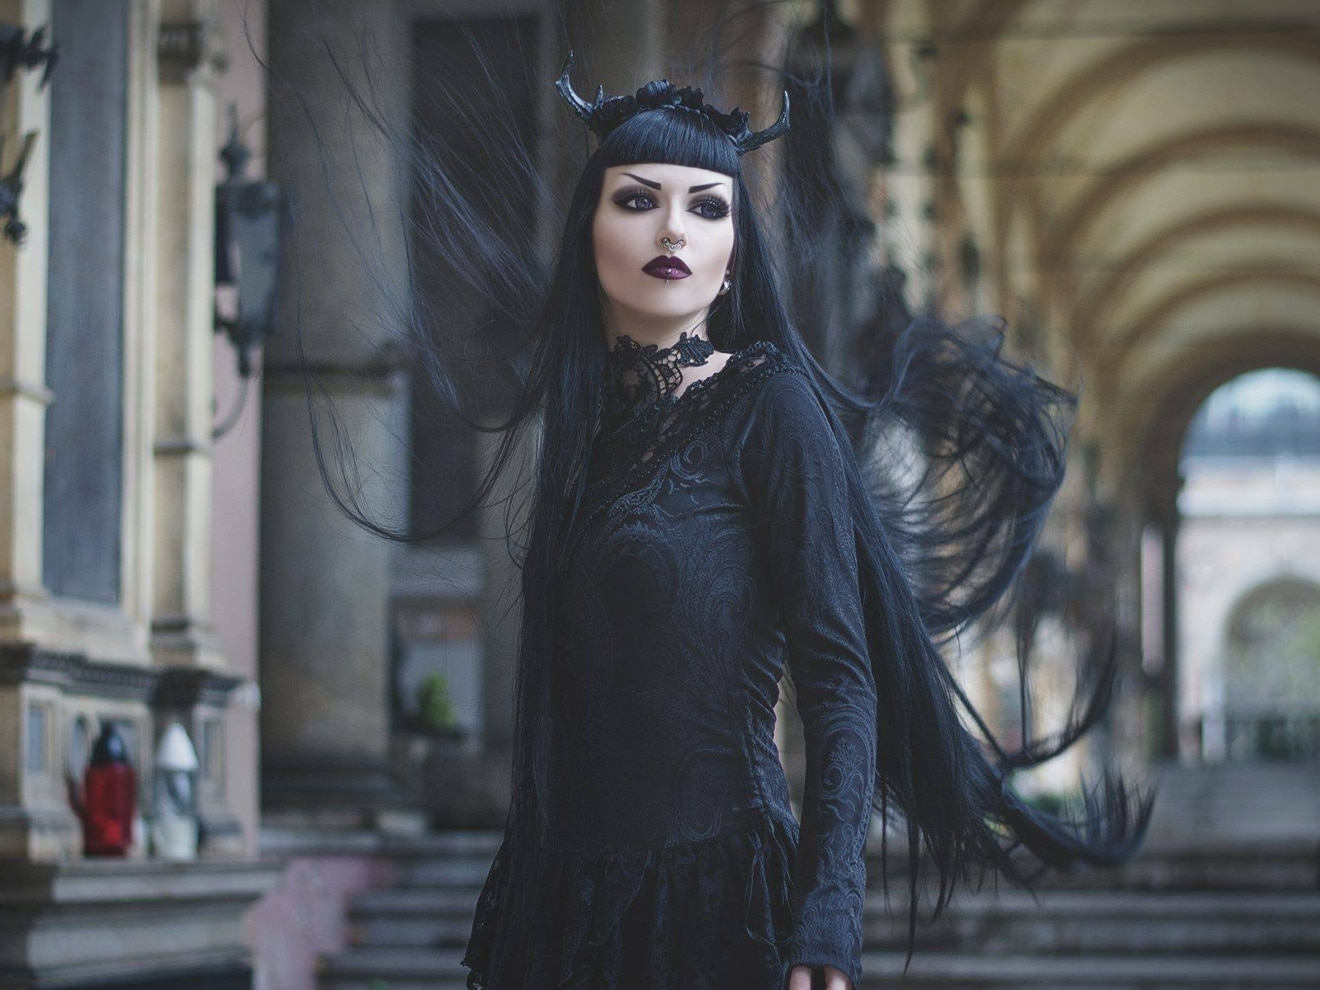 The Origin and Development of the Creative Goth Subculture